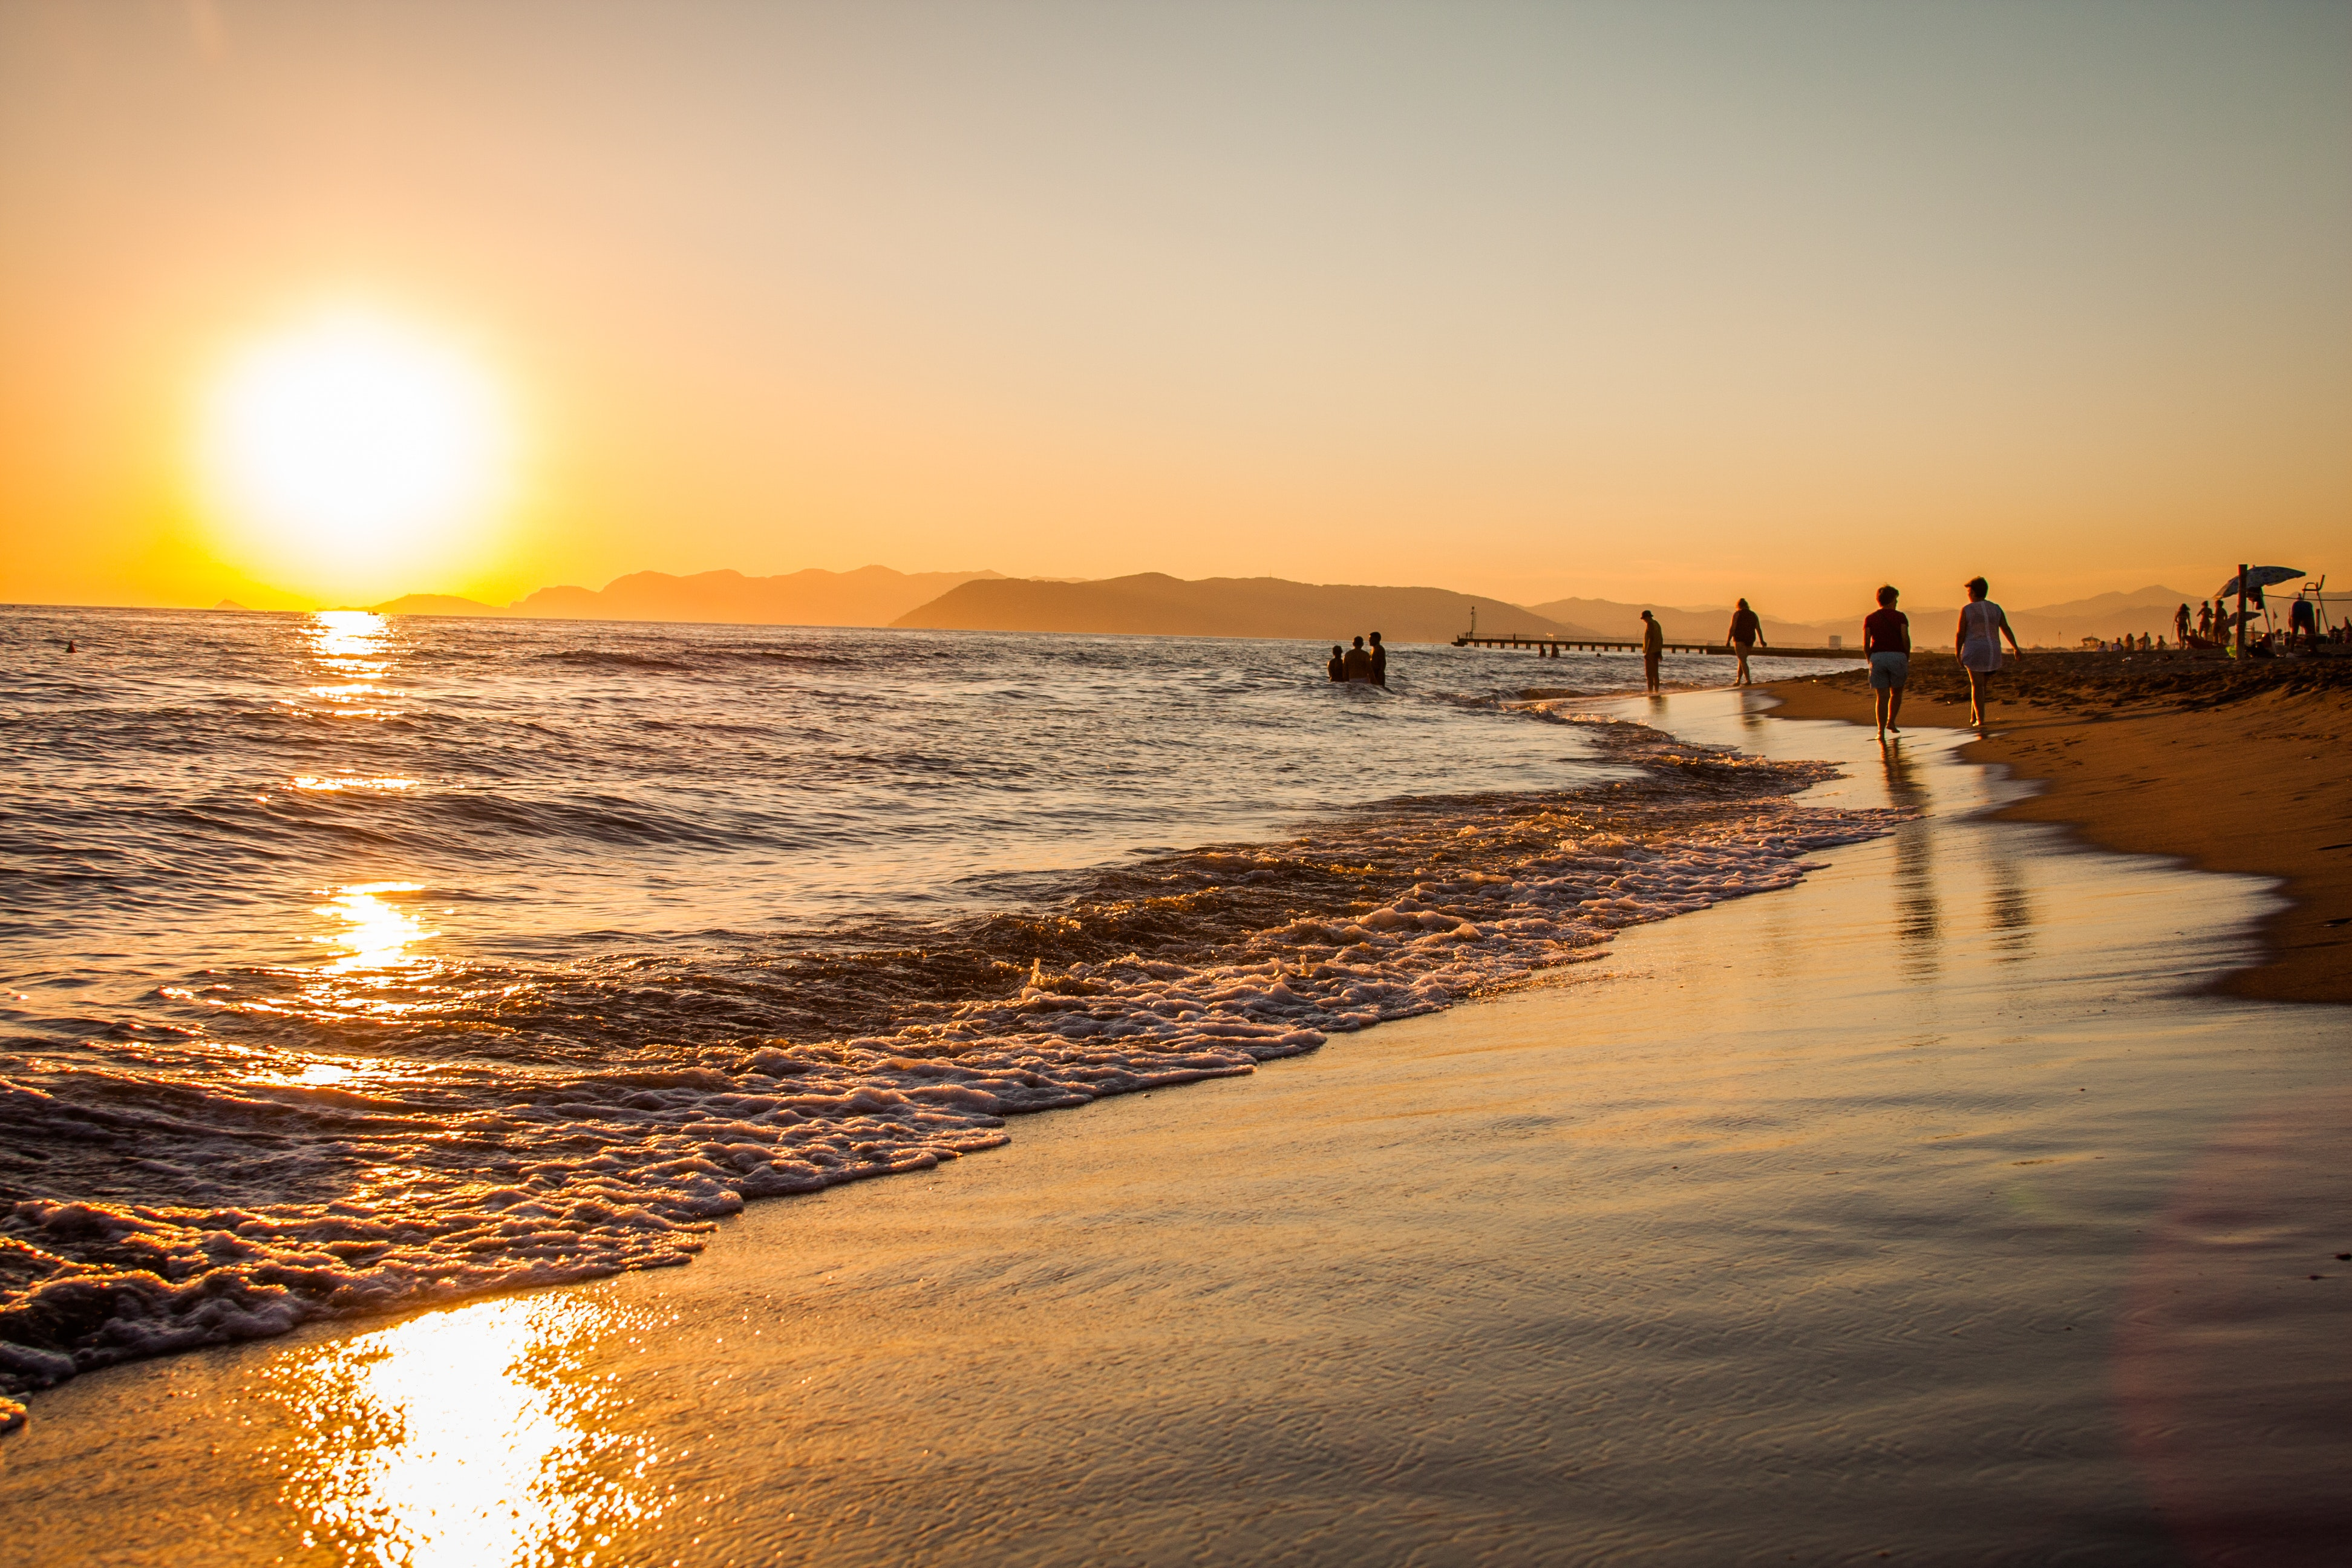 Group of People Walking at the Shoreline during Golden Hour, Beach, Sea, Water, Swimming, HQ Photo